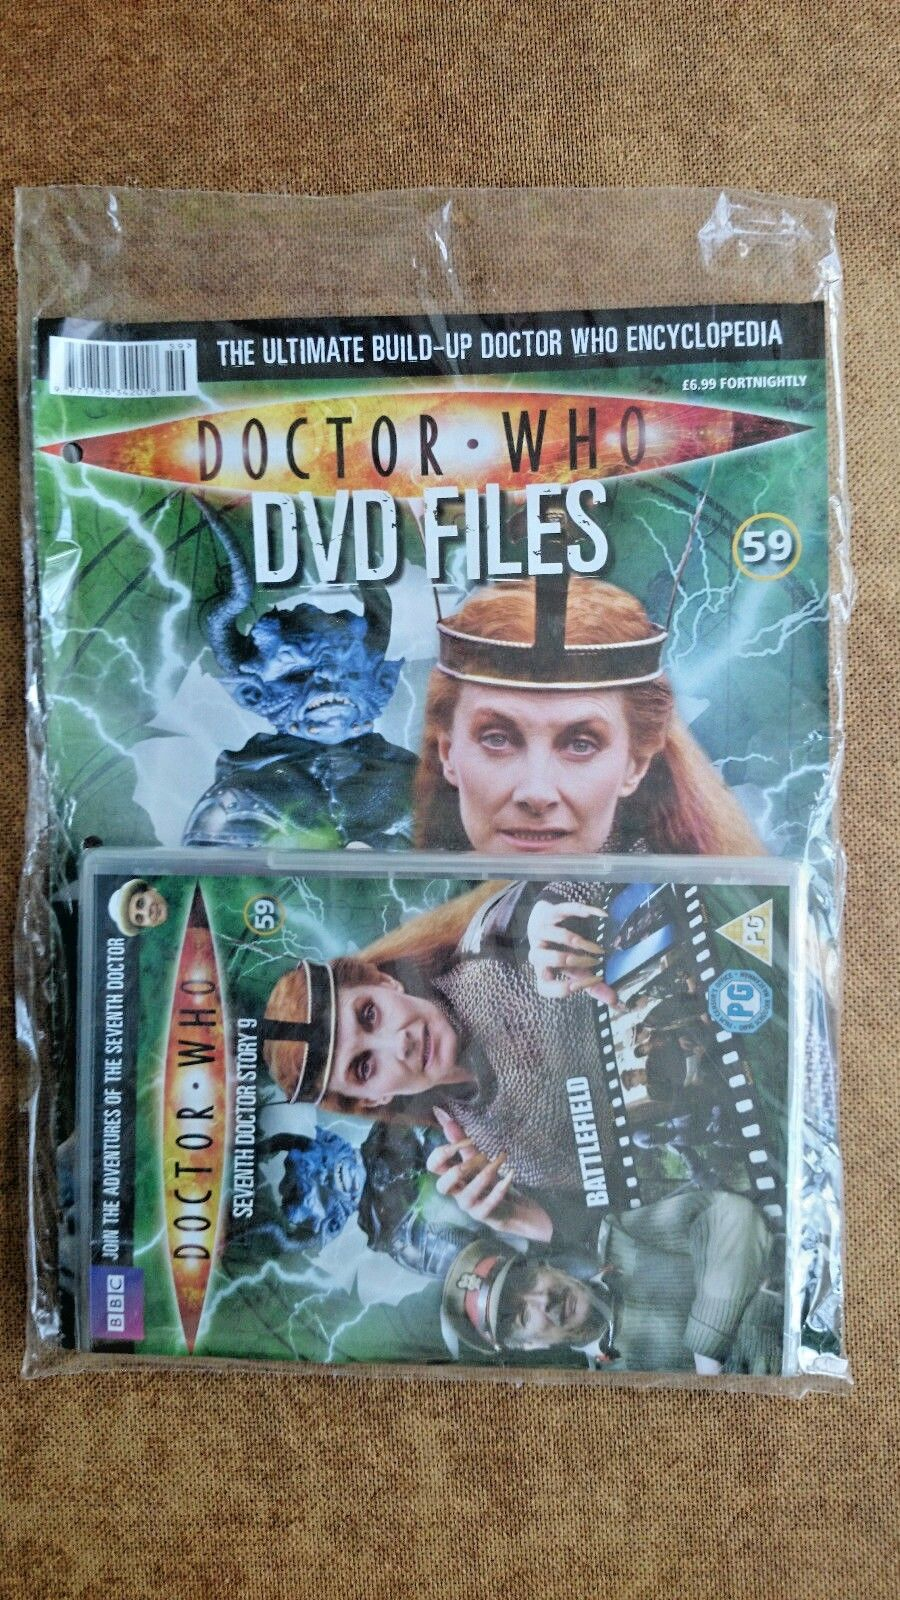 Doctor Who Battlefield DVD New and Sealed with Magazine ...Sylvester McCoy.